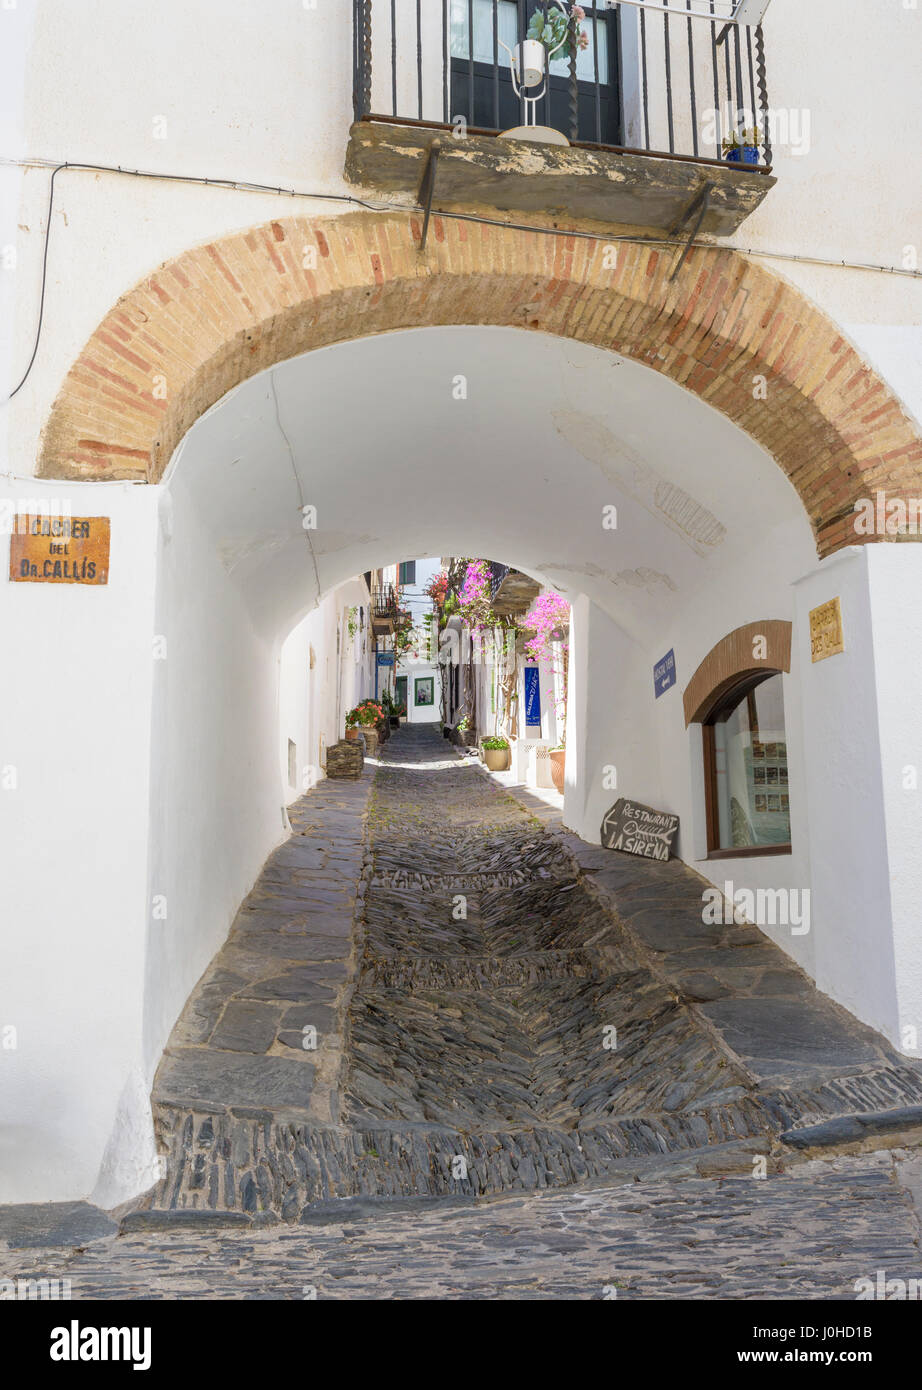 An arch passageway through a whitewashed building along Carrer des Call known for its herringbone rastell cobble - Stock Image